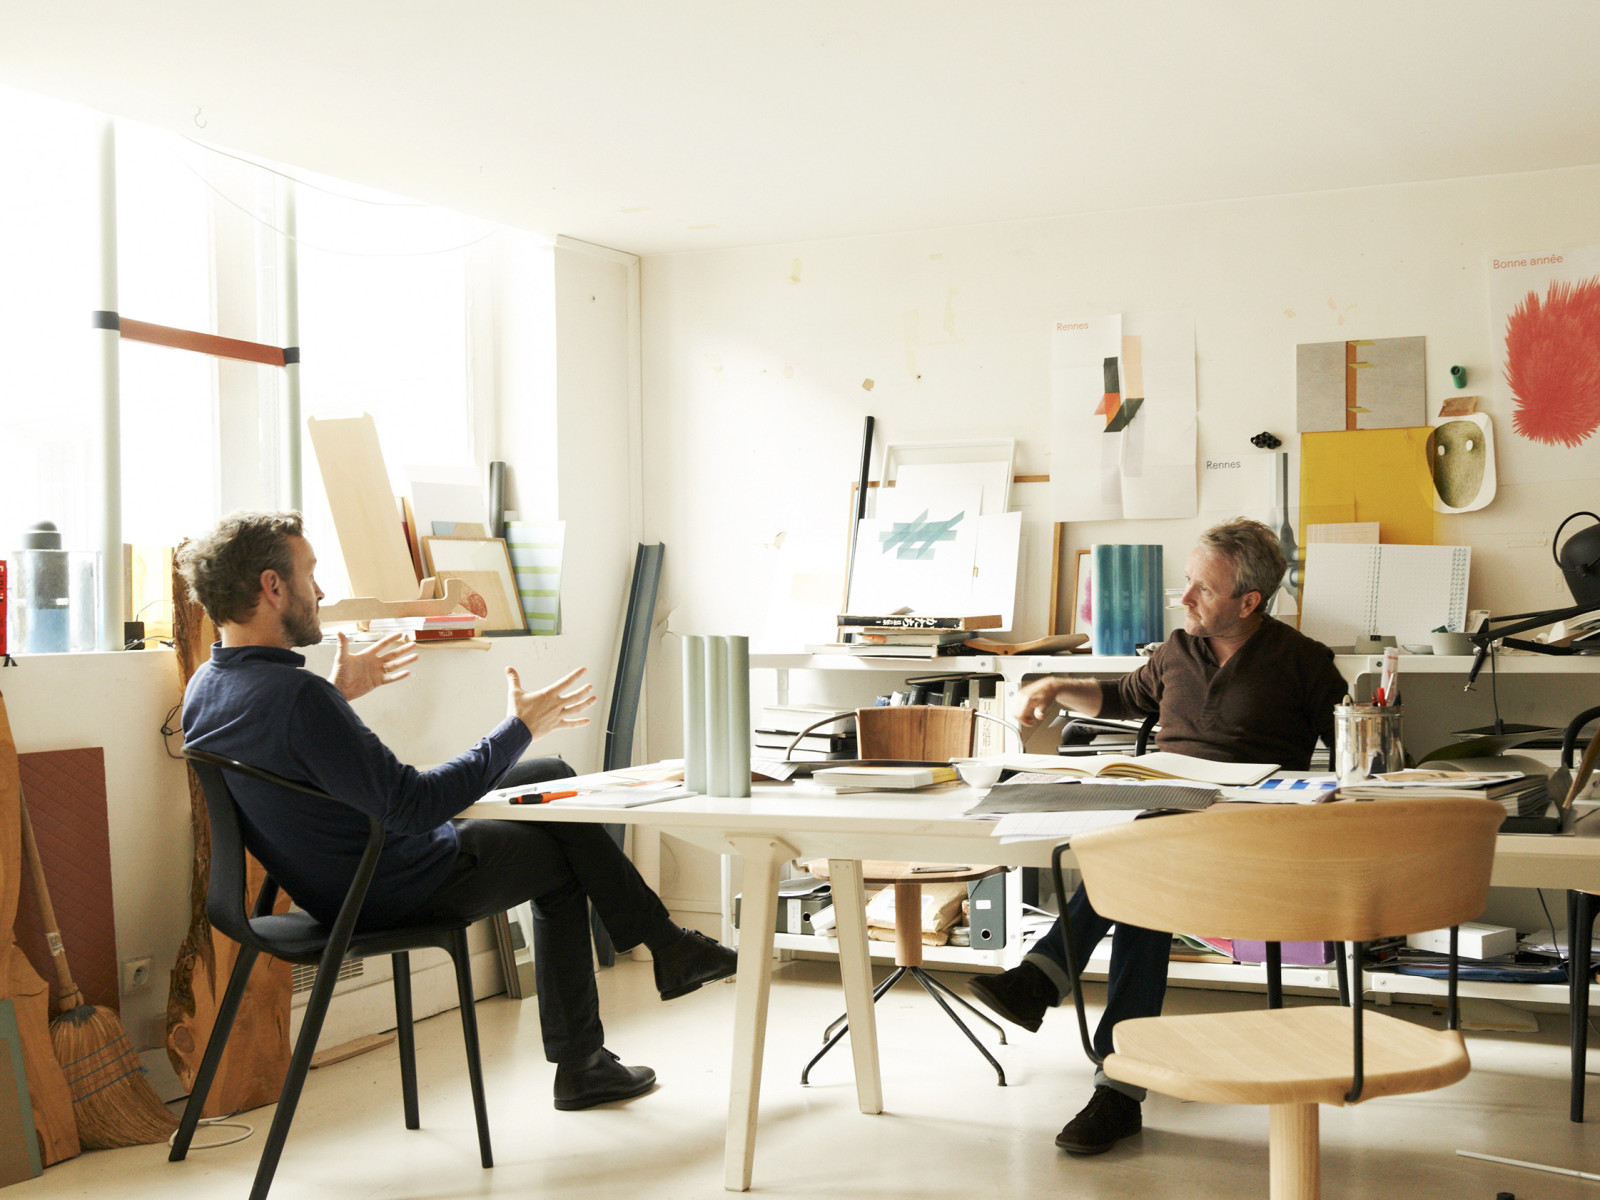 A Discreet Charm: The first family of French product design